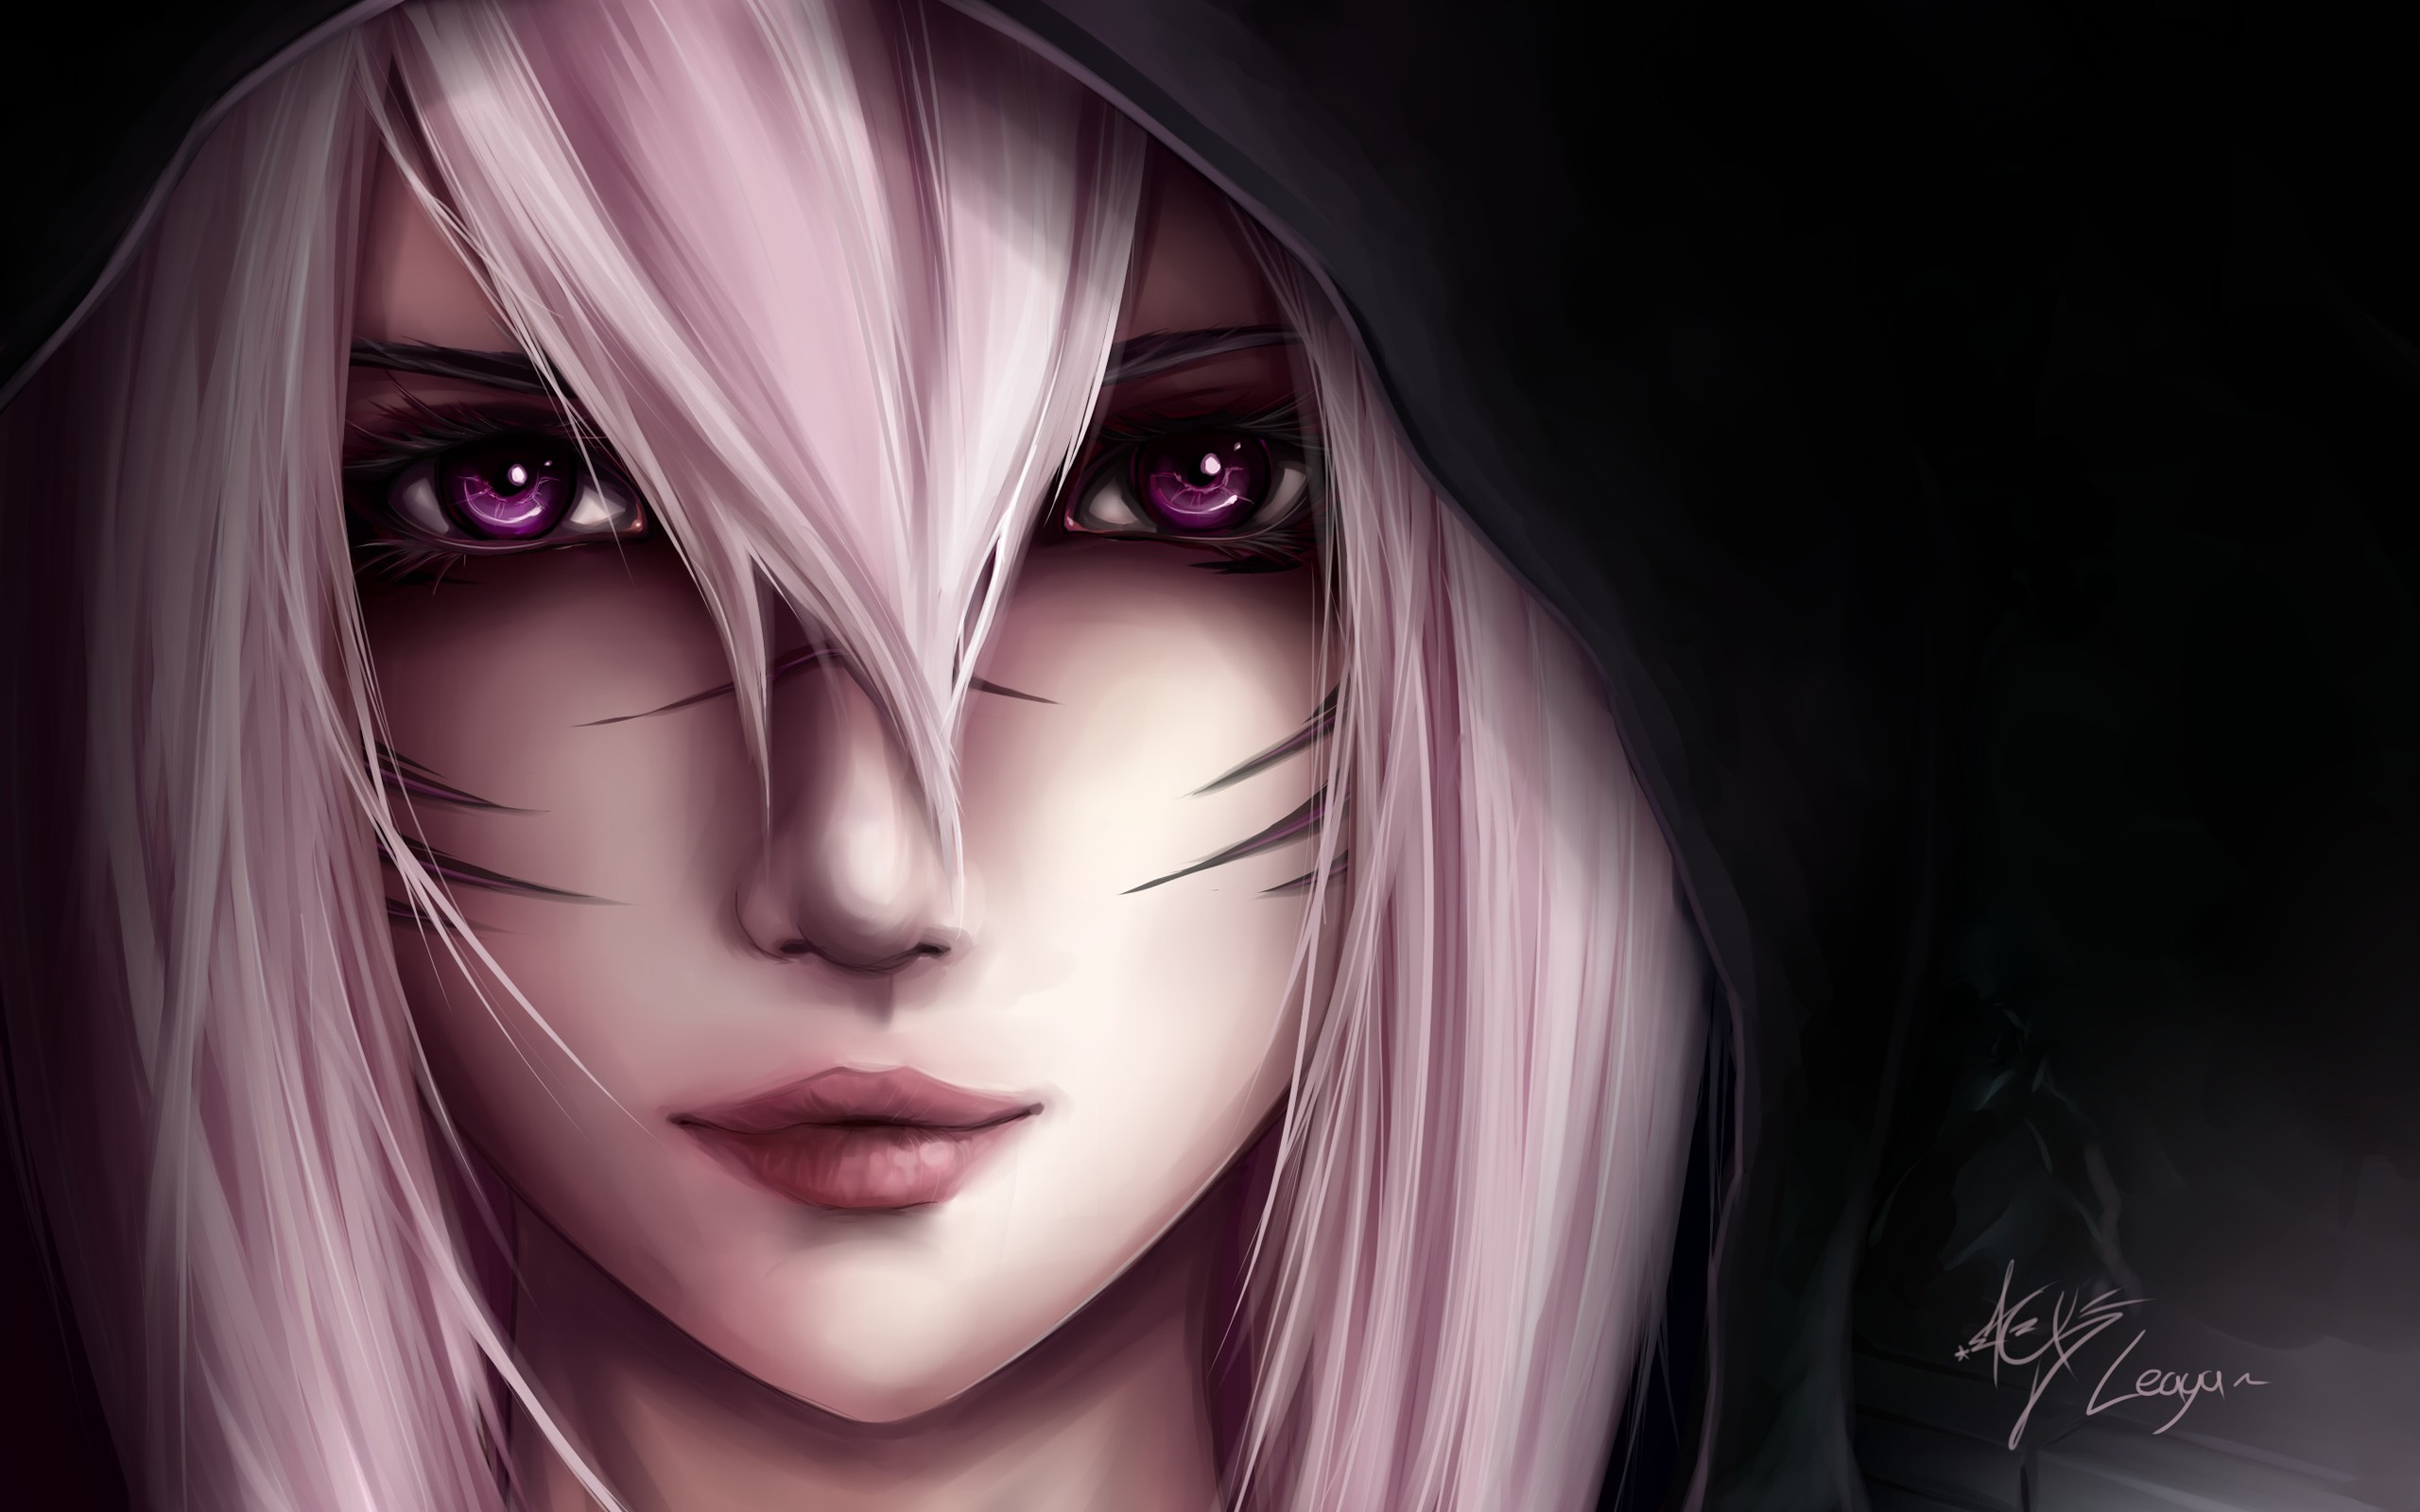 Wallpaper Art Picture Girl White Hair Black Background 2560x1600 Hd Picture Image